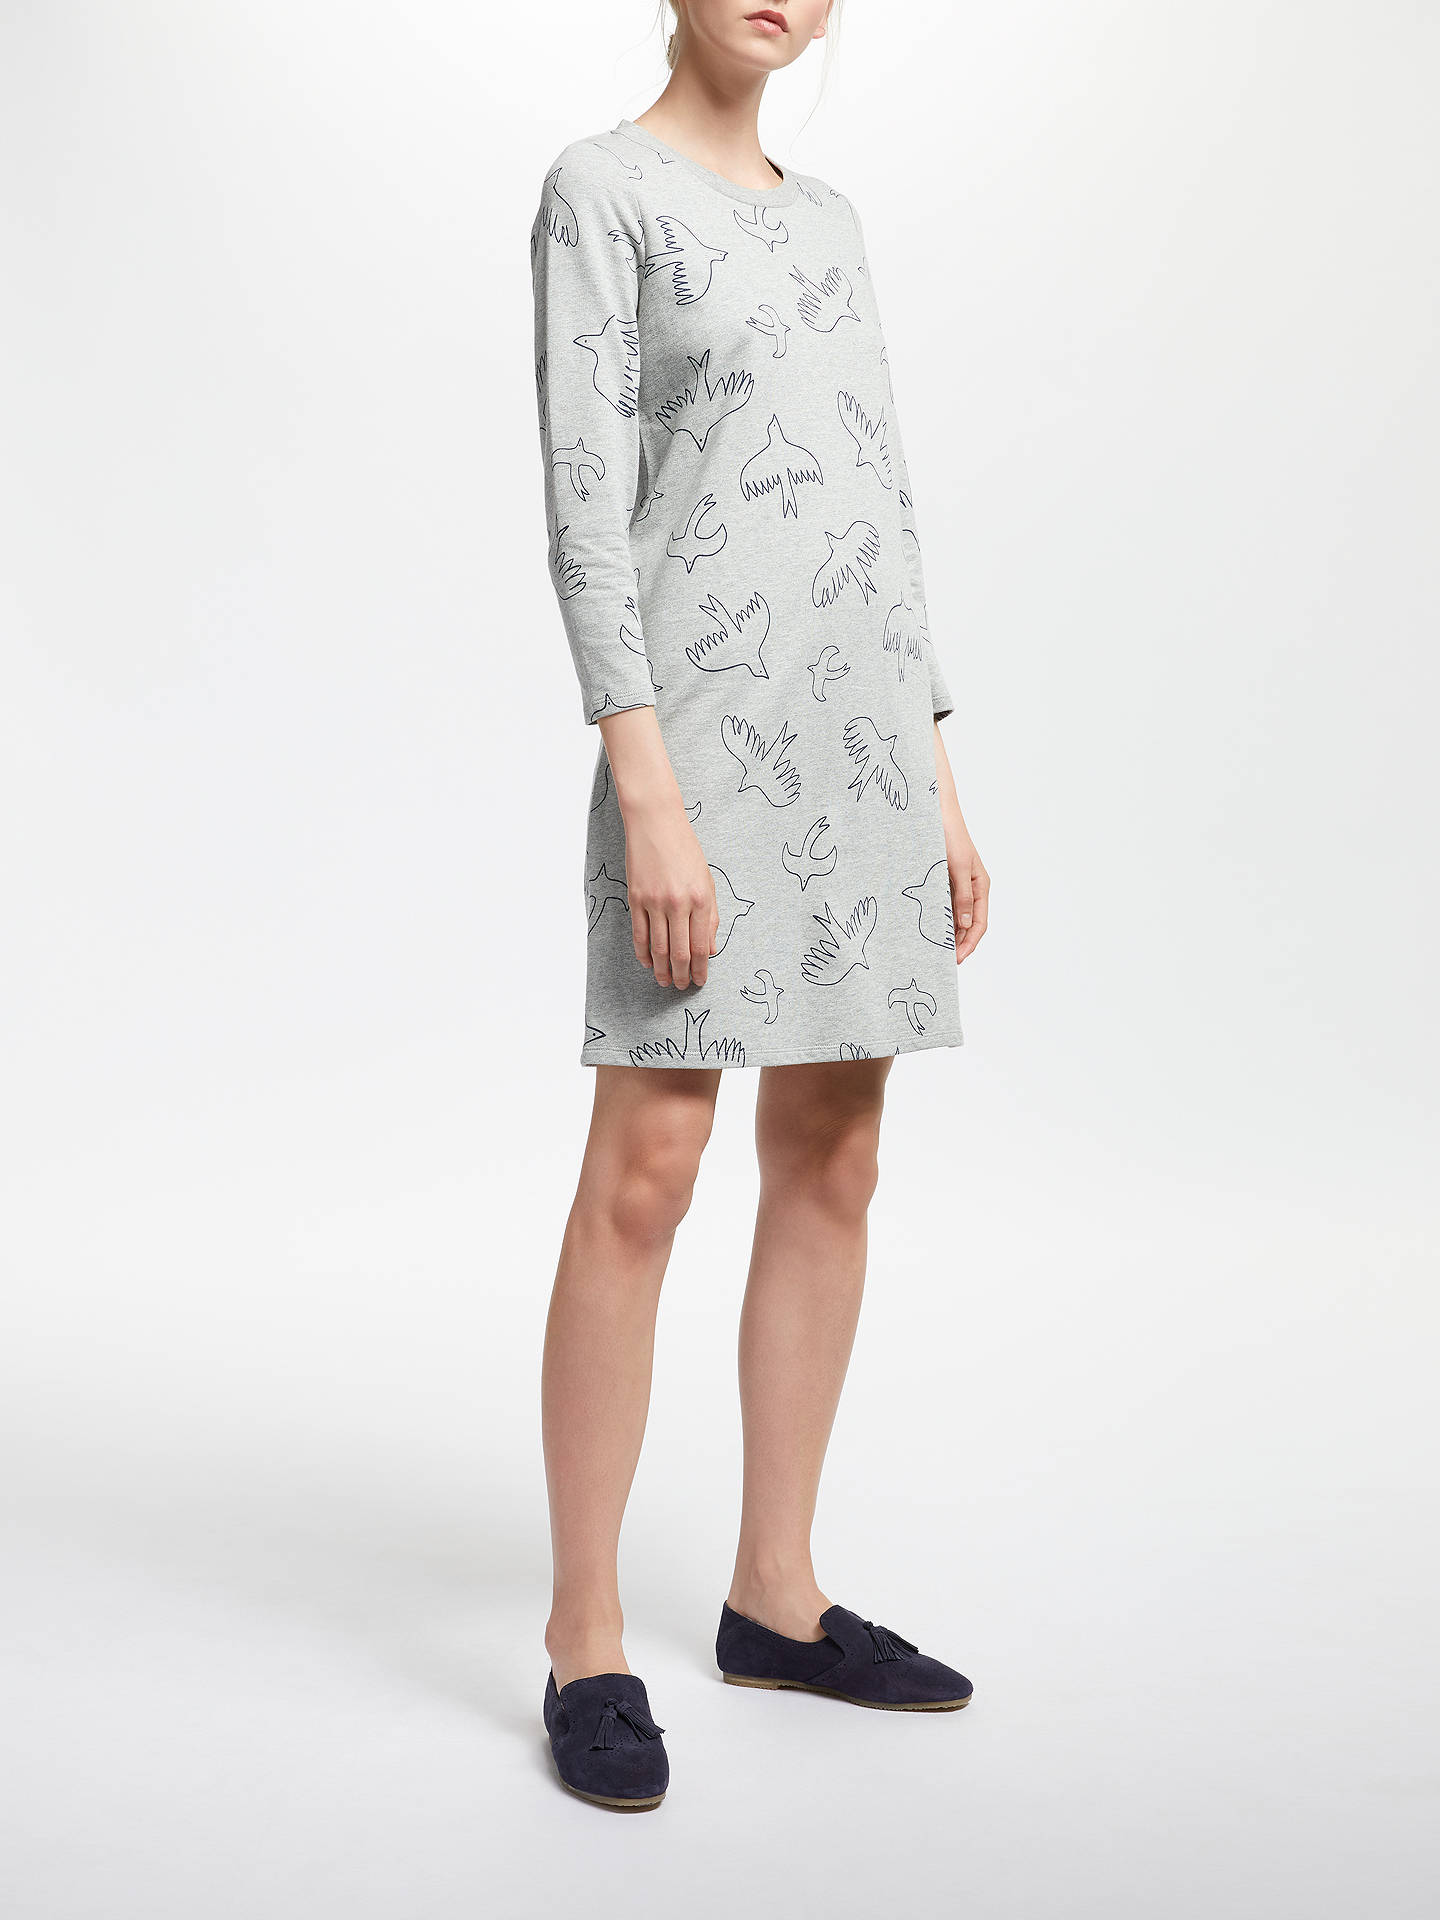 Buy Boden Cotton Sweatshirt Dress, Grey, 10 Online at johnlewis.com